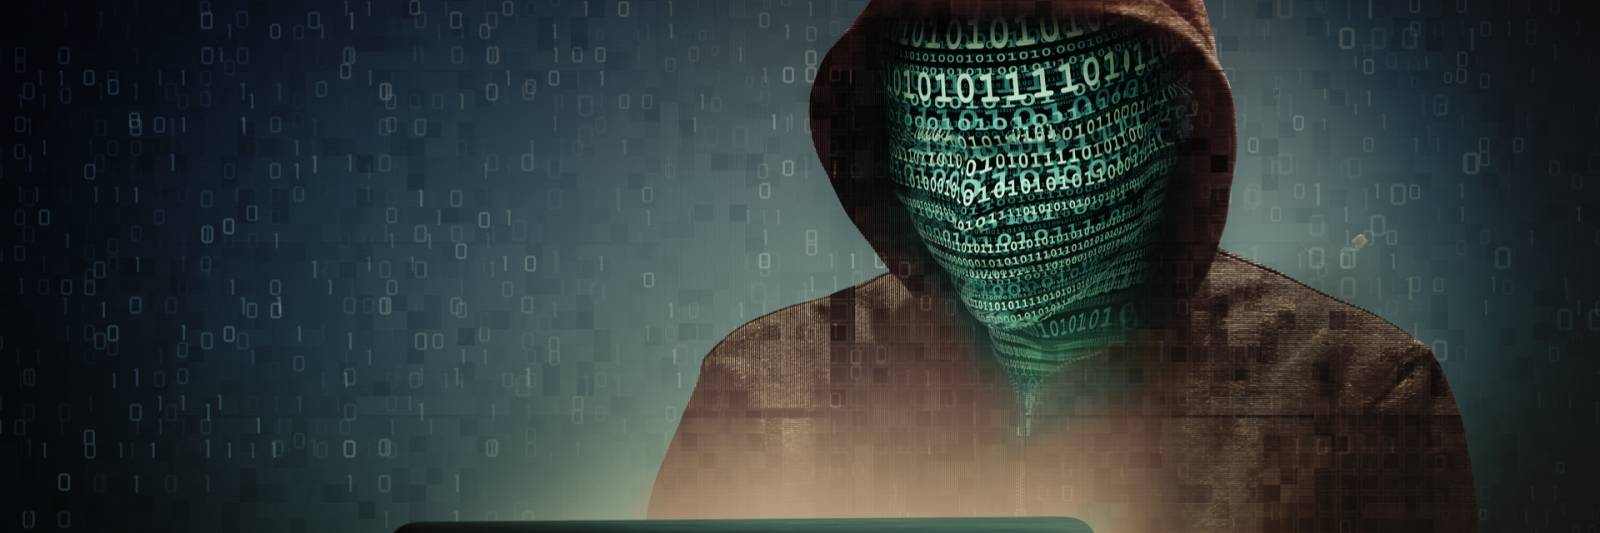 Dark Web Markets Consolidate As Competition Takes Its Toll